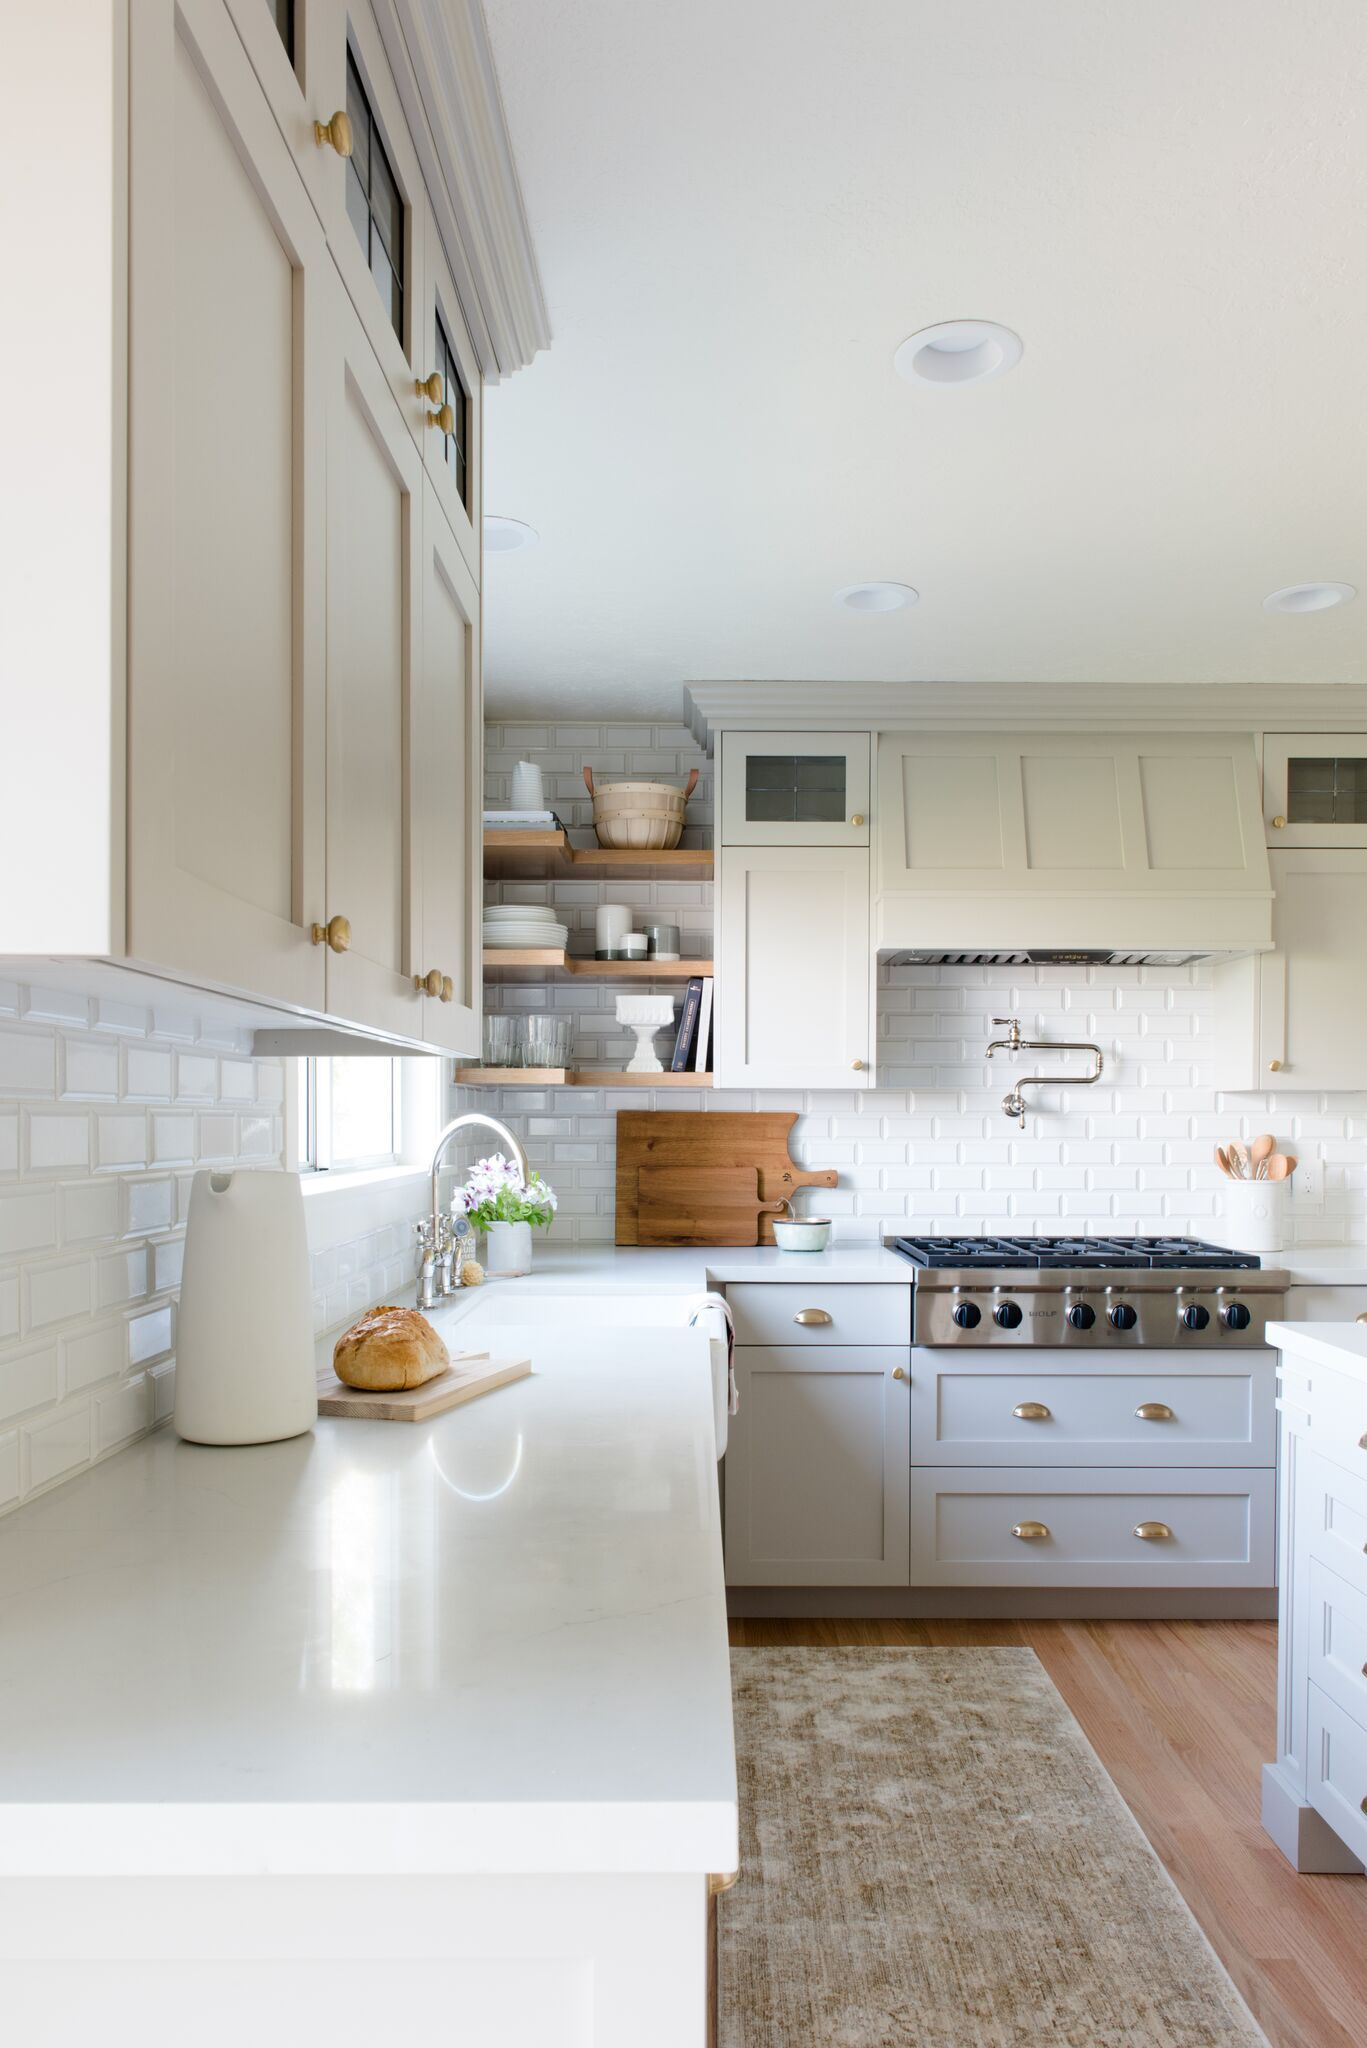 Evergreen Kitchen Remodel Reveal KITCHEN LAUNDRY ROOM